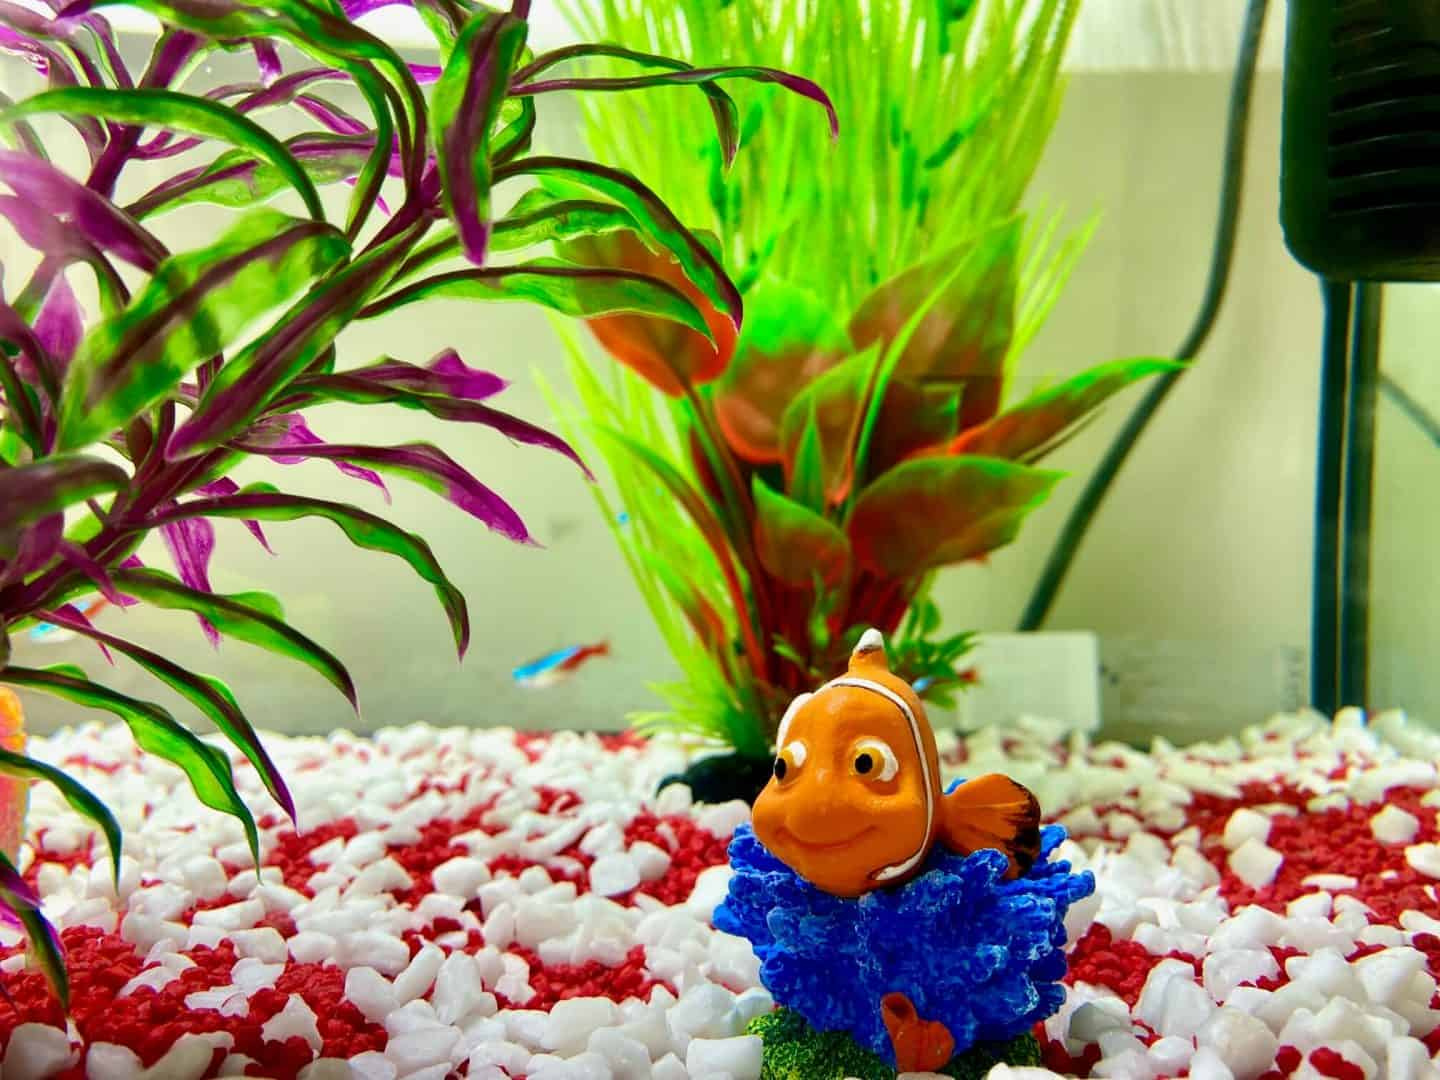 setting up a fish tank with decorations